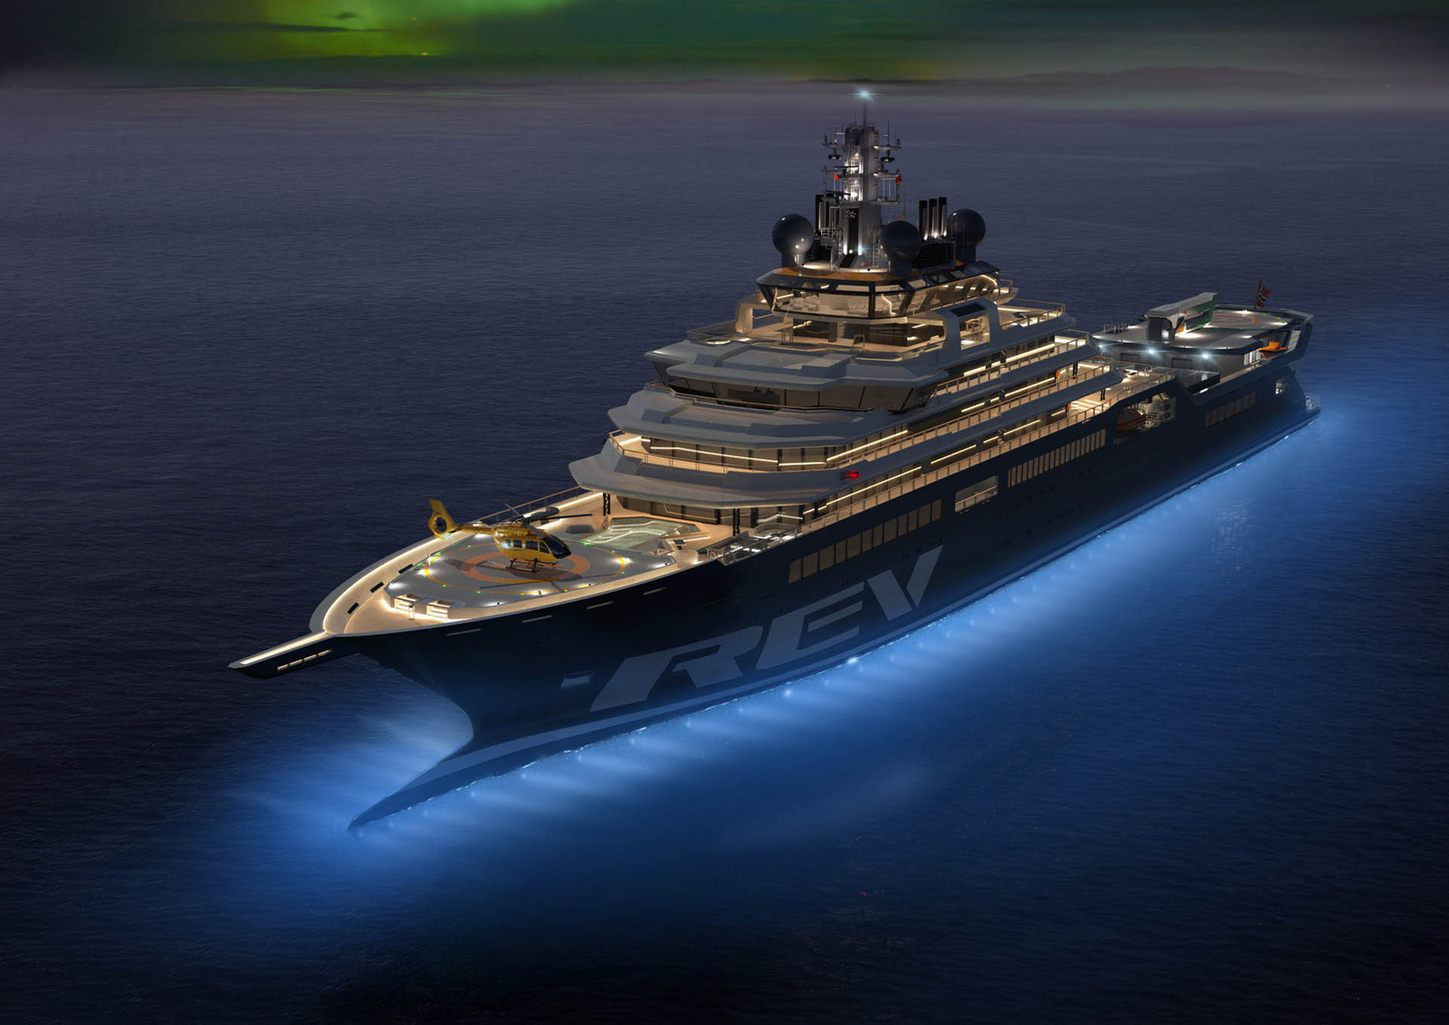 World's biggest yacht: 8 of the best features on board expedition superyacht REV Ocean